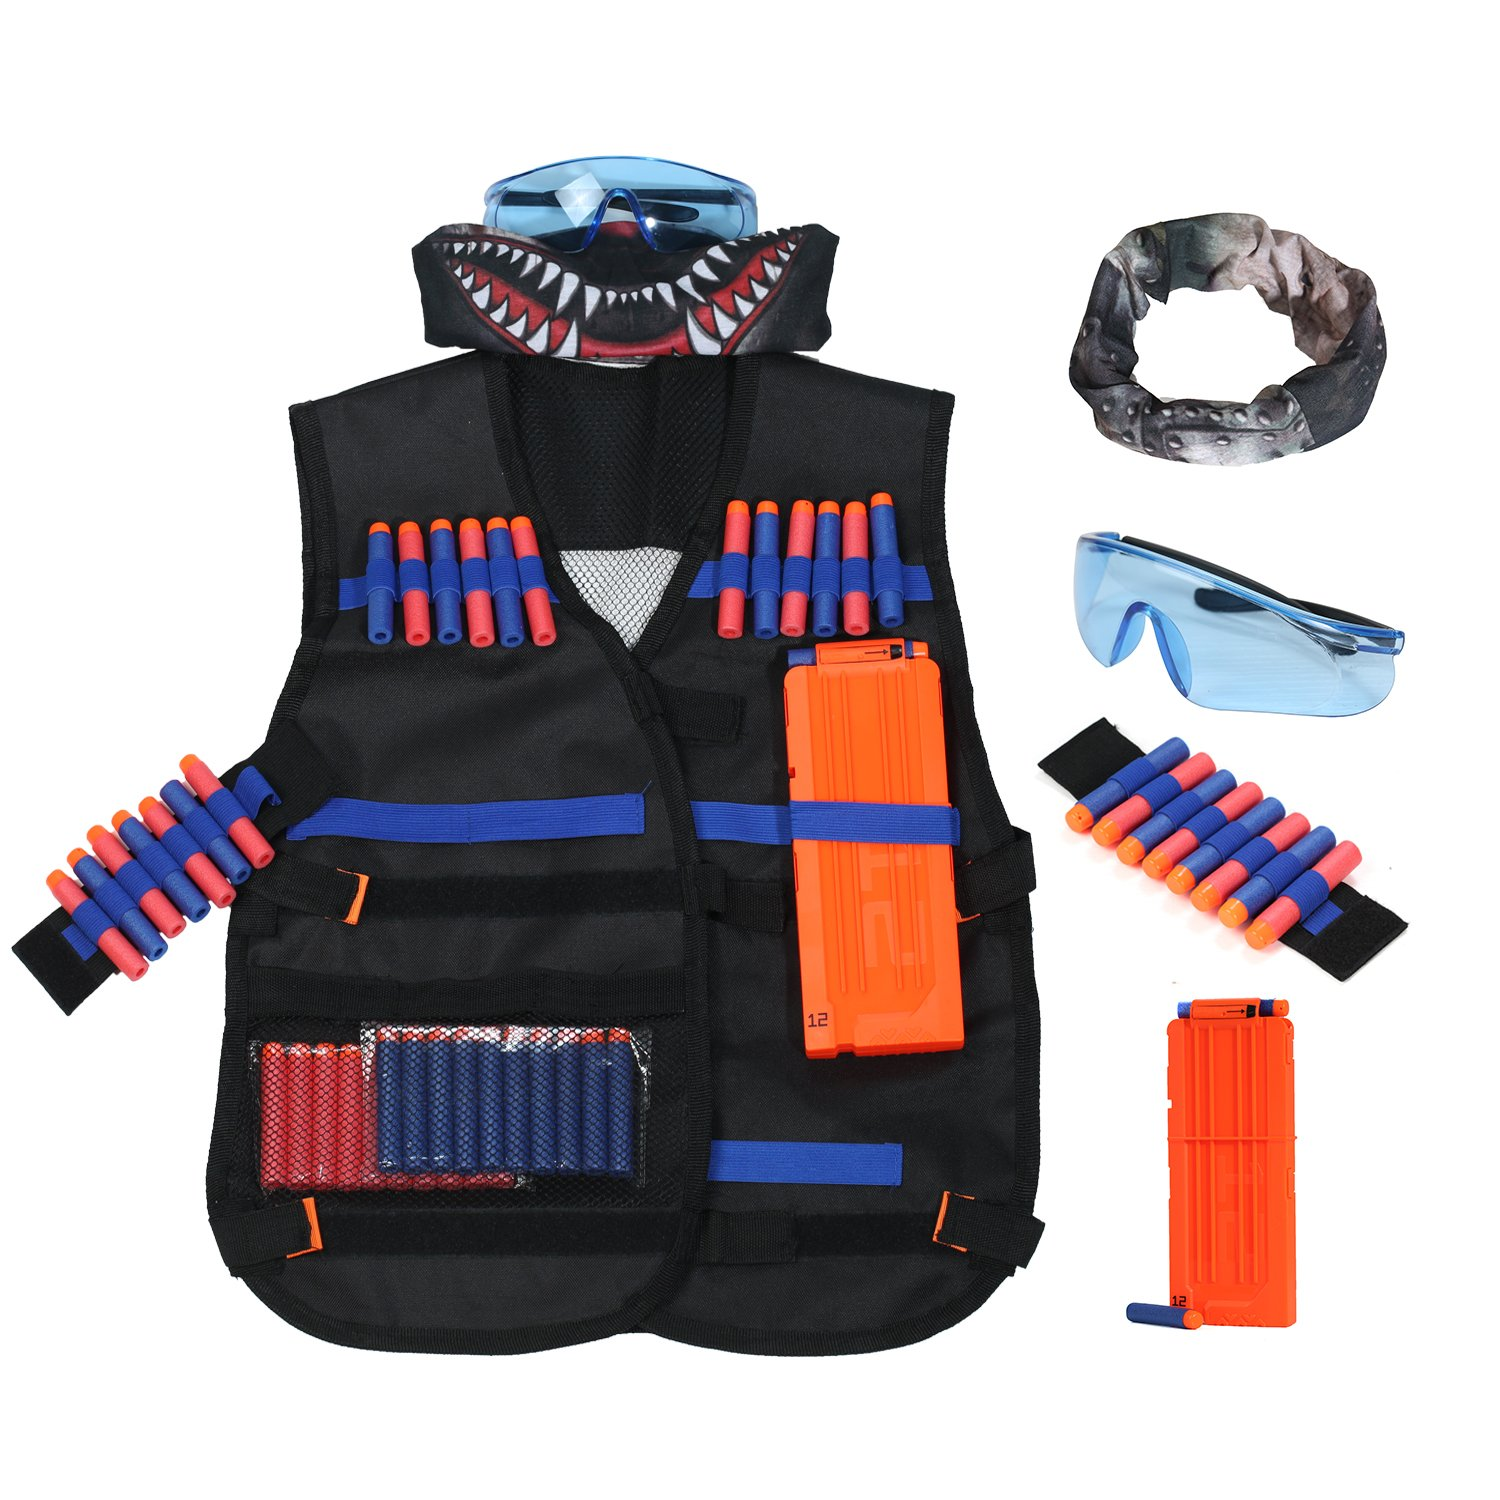 Kids Tactical Vest Kit for Nerf Guns N-Strike Elite Series, include Refill Darts Reload Clips Tube Mask and Protective Glasses by Vopa